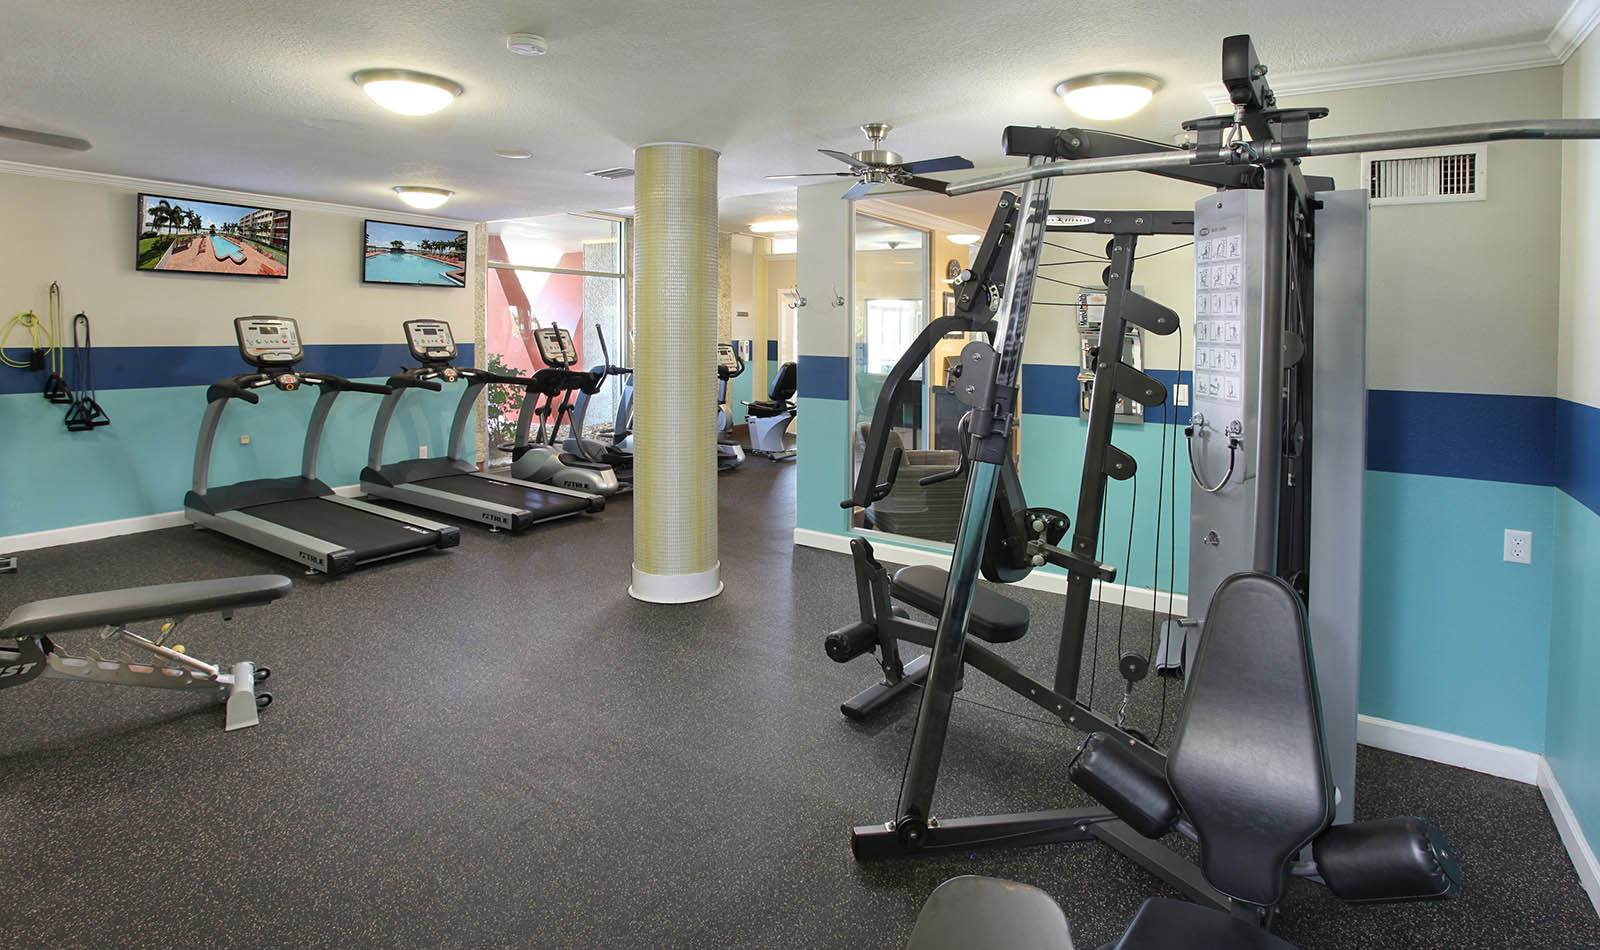 Fitness center at apartments in South Pasadena, FL